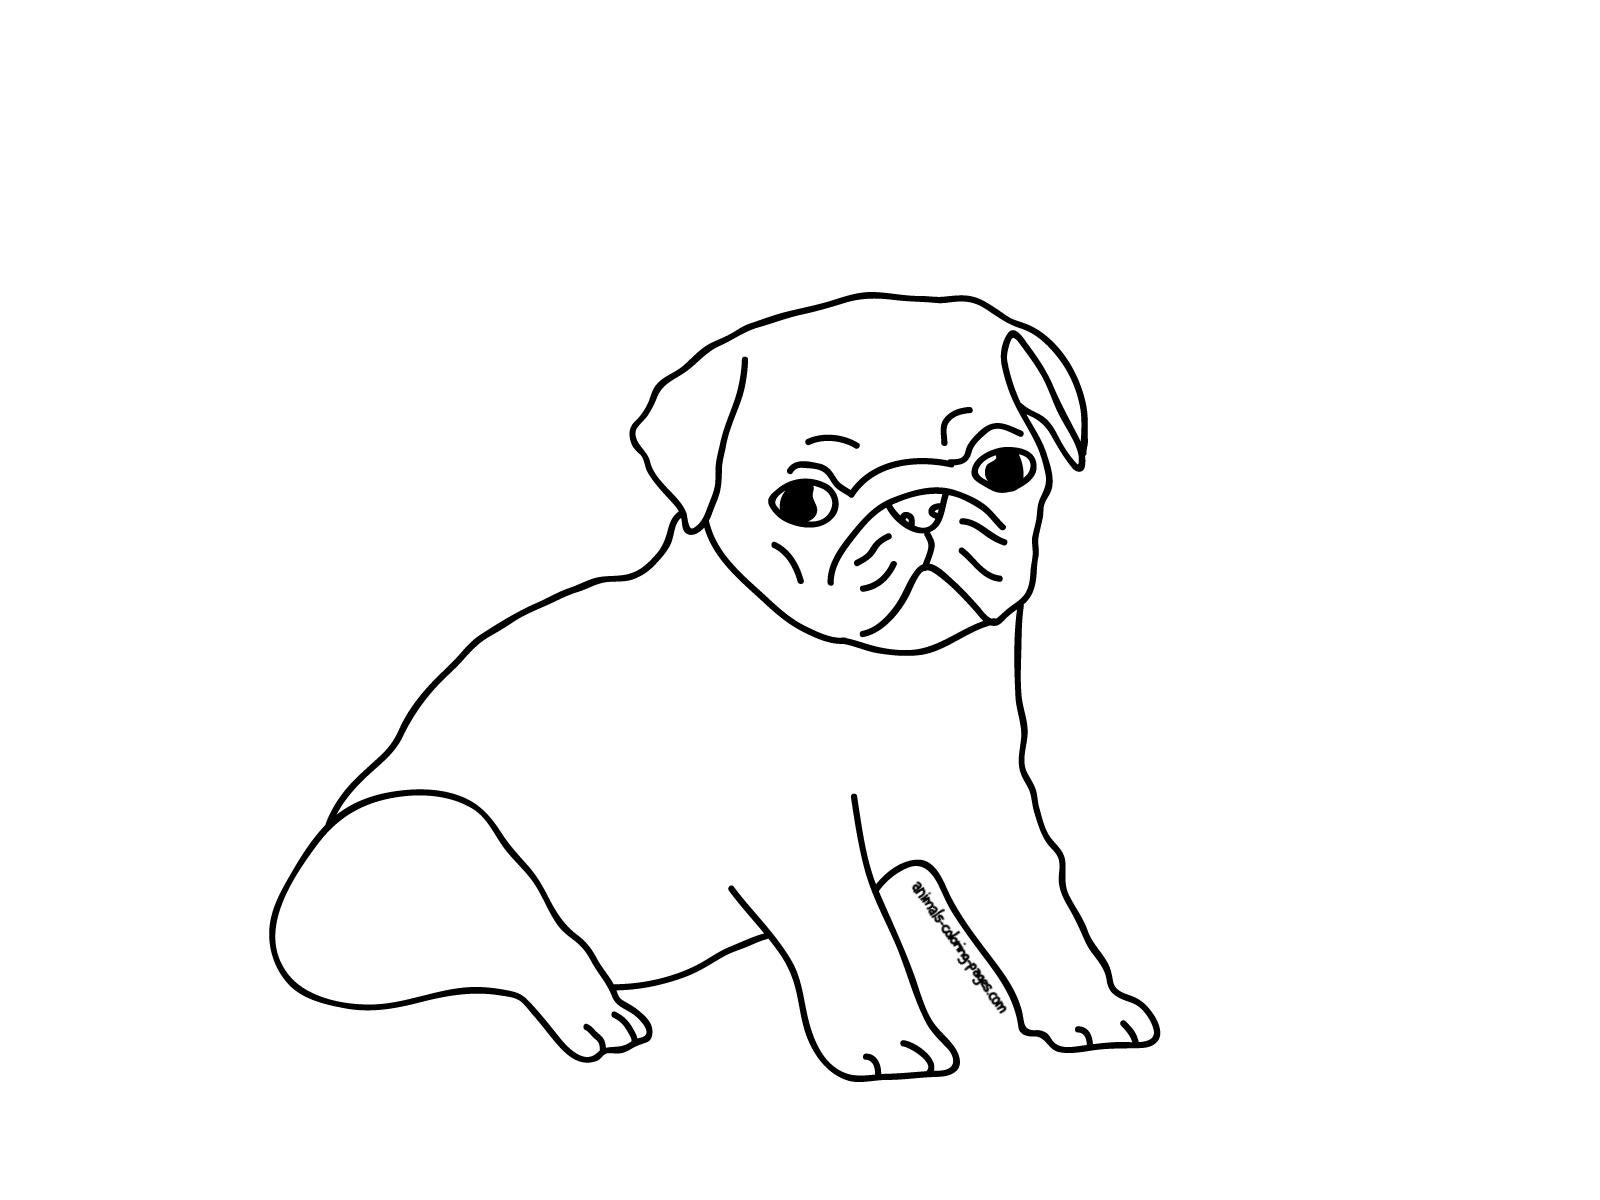 pug coloring pages - photo#24